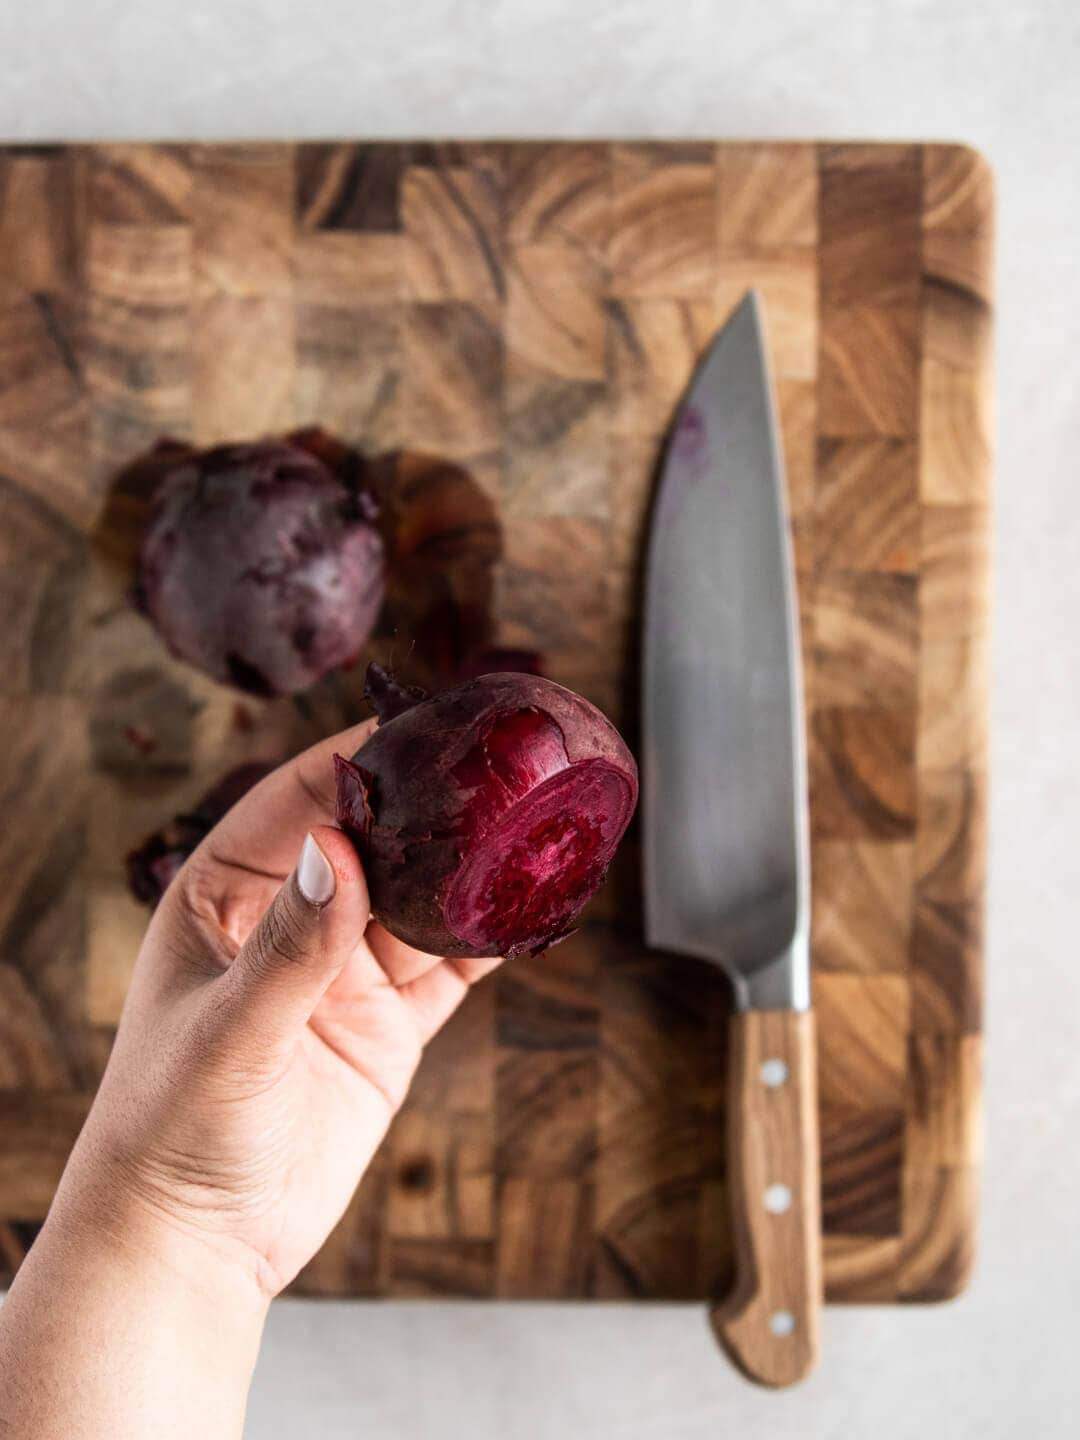 Hands holding cooked beet after slicing off the top.